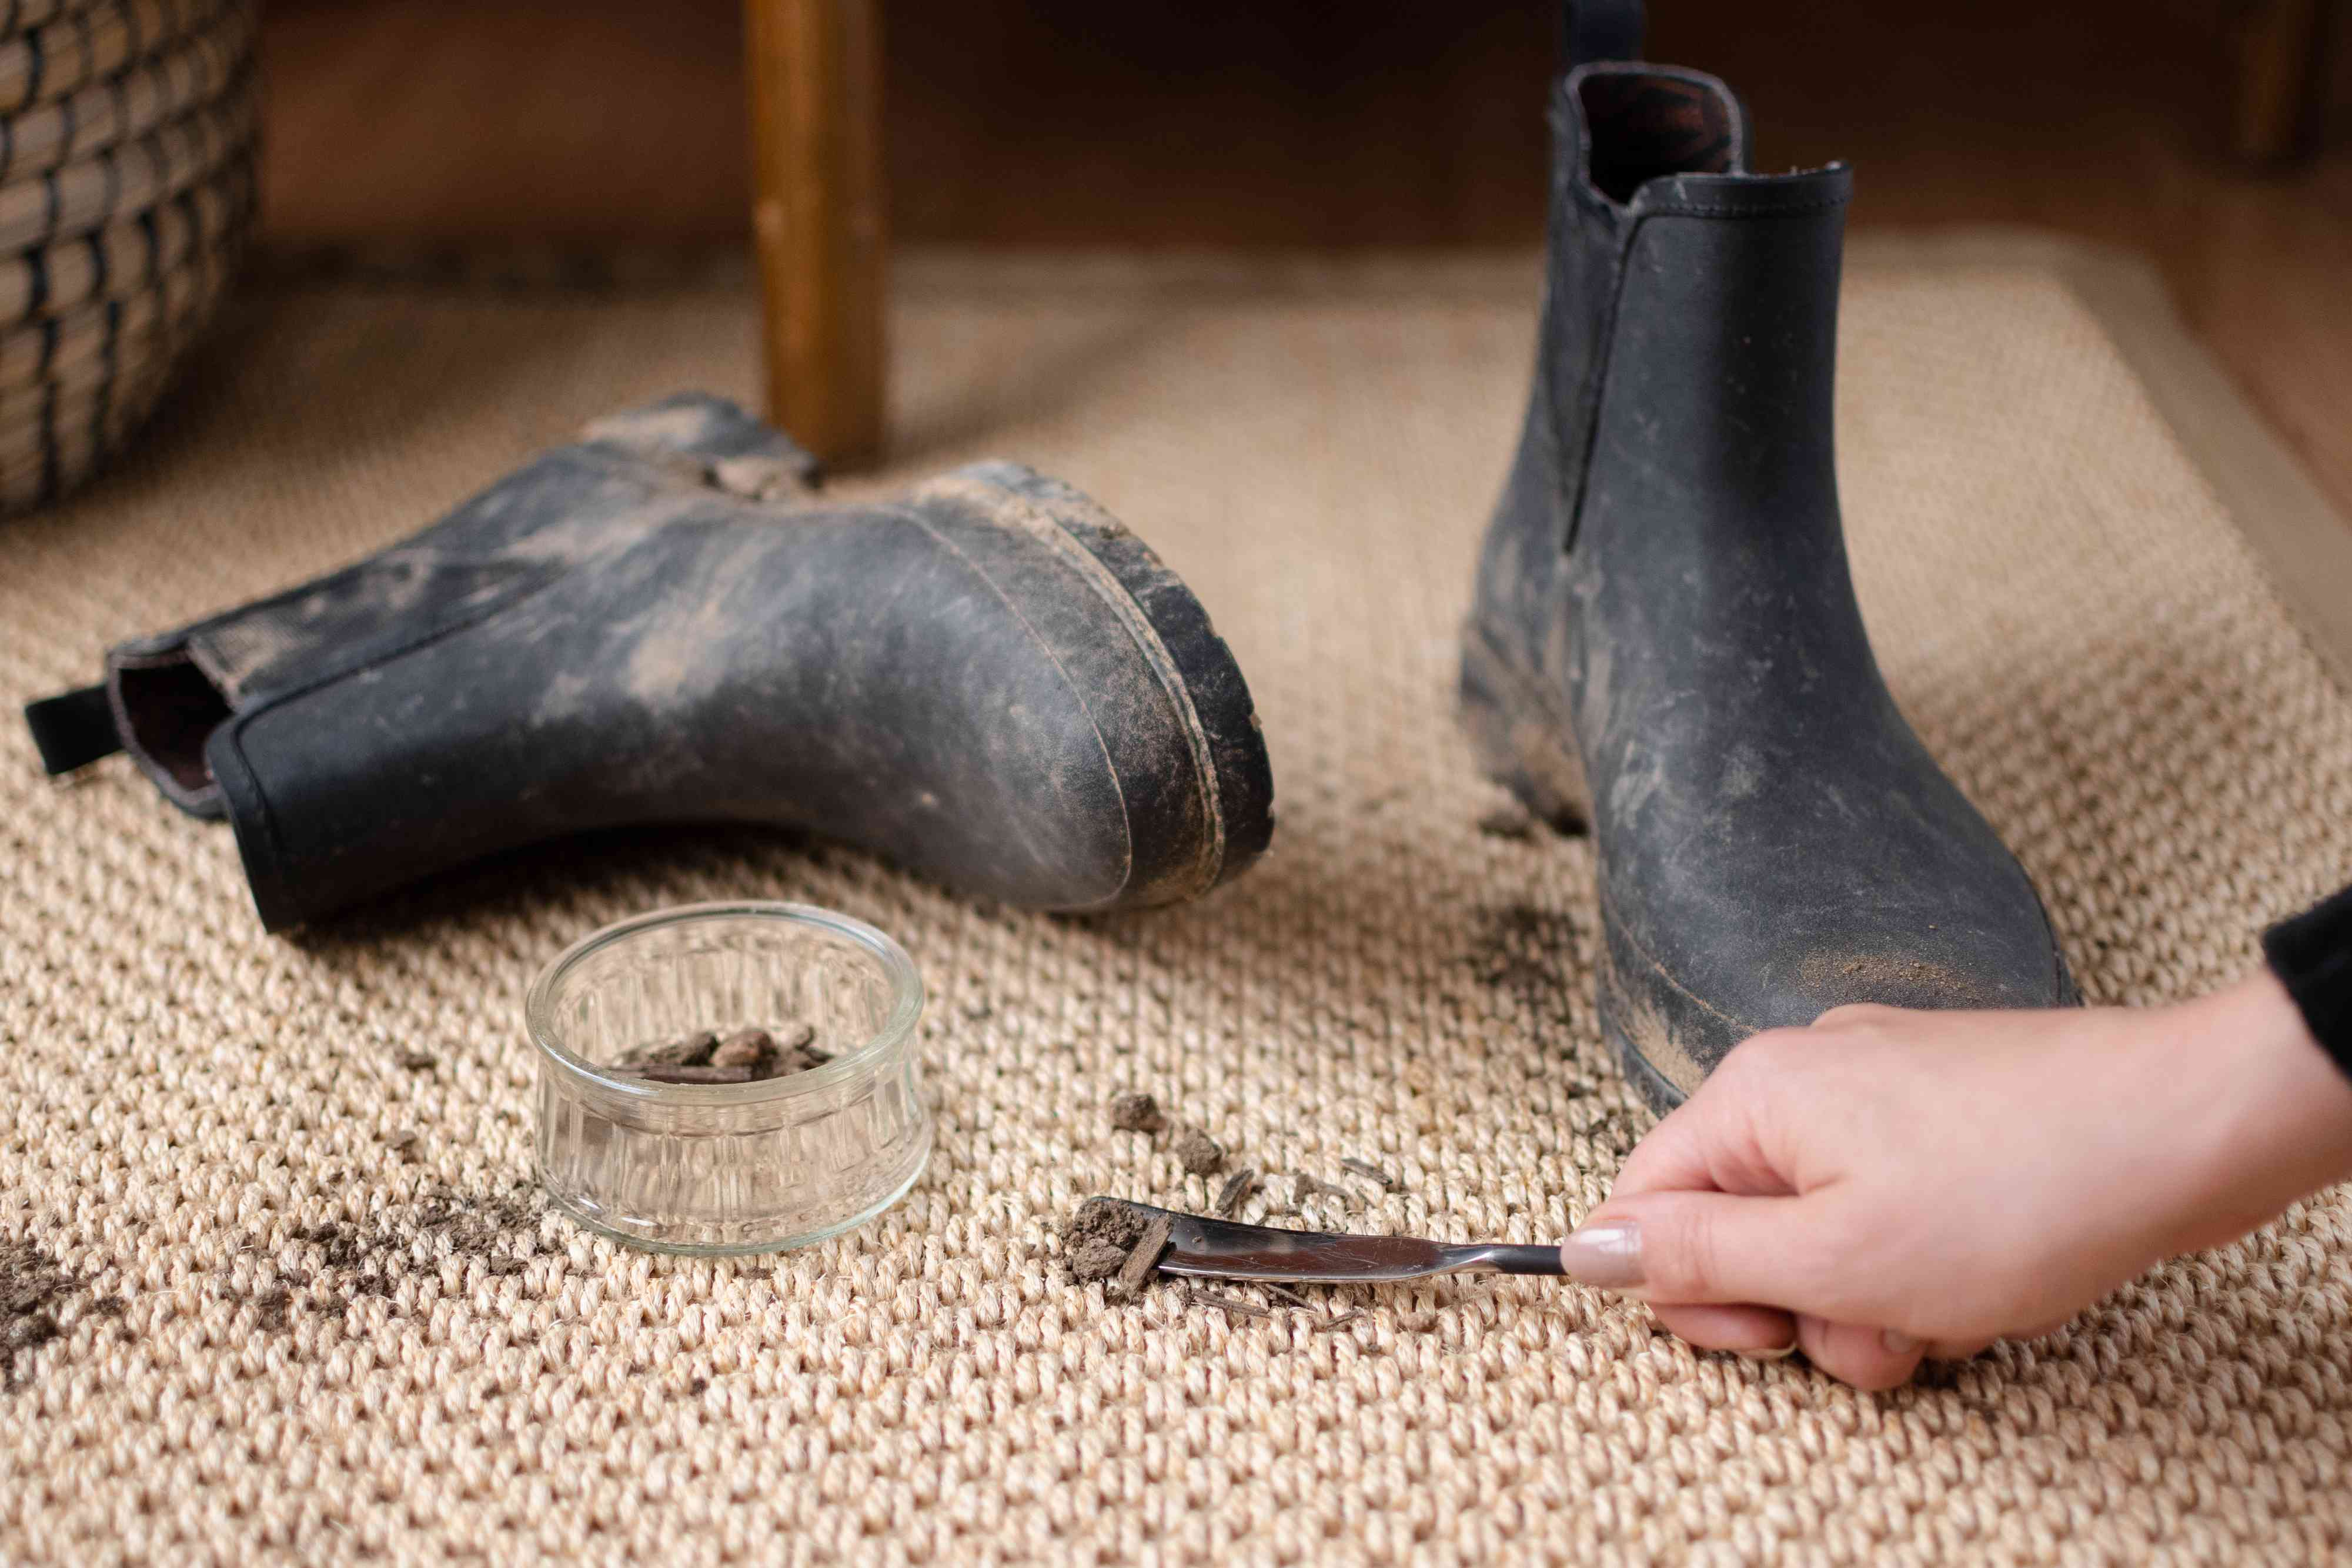 Dull knife scraping up dirt spills from mud covered boots on sisal rug